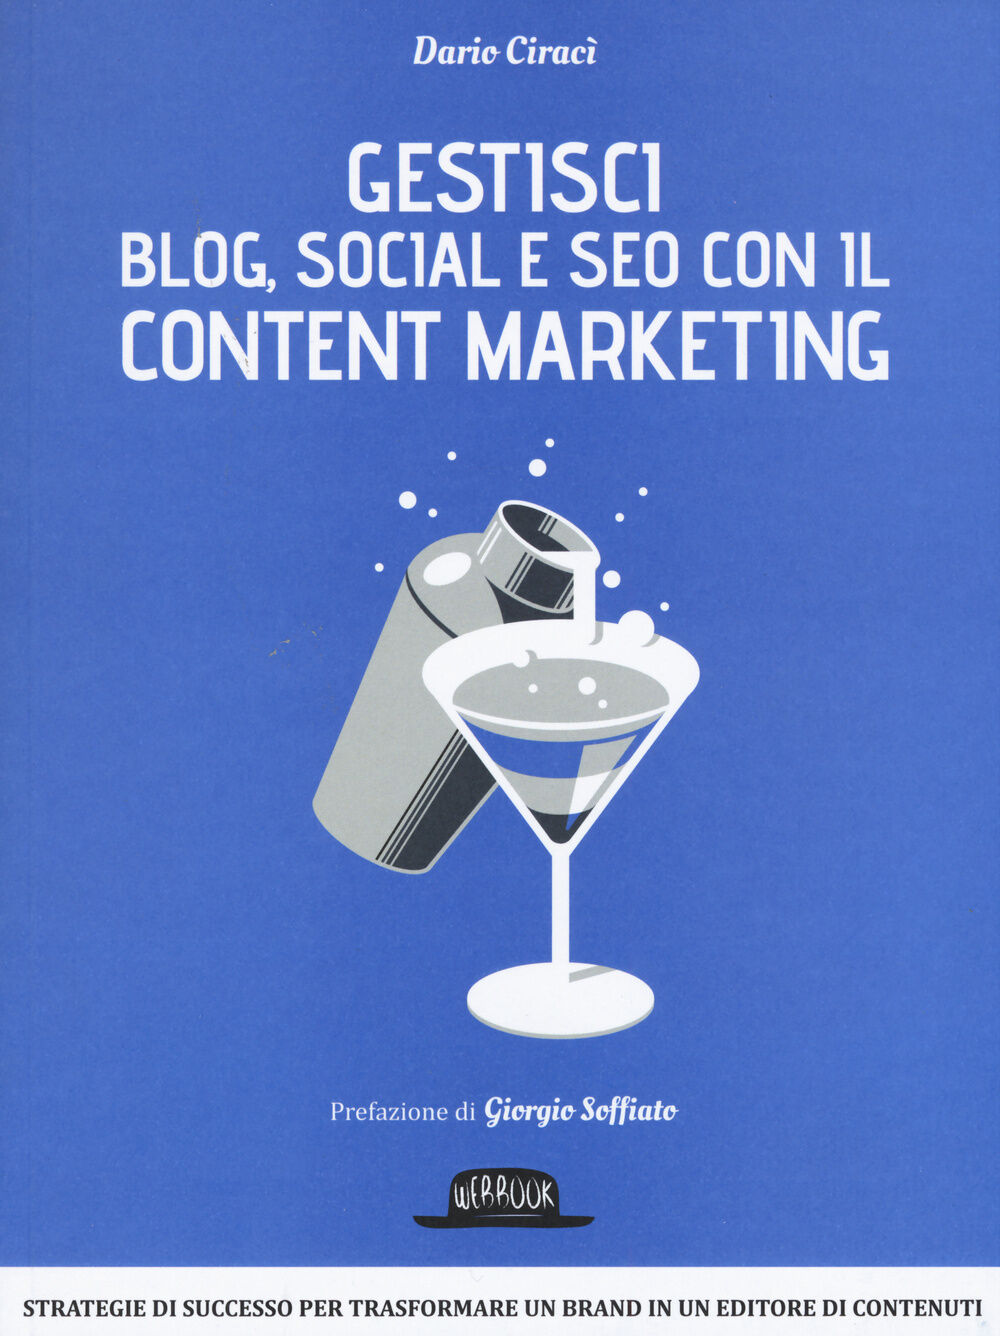 Gestici blog, social e SEO con il content marketing